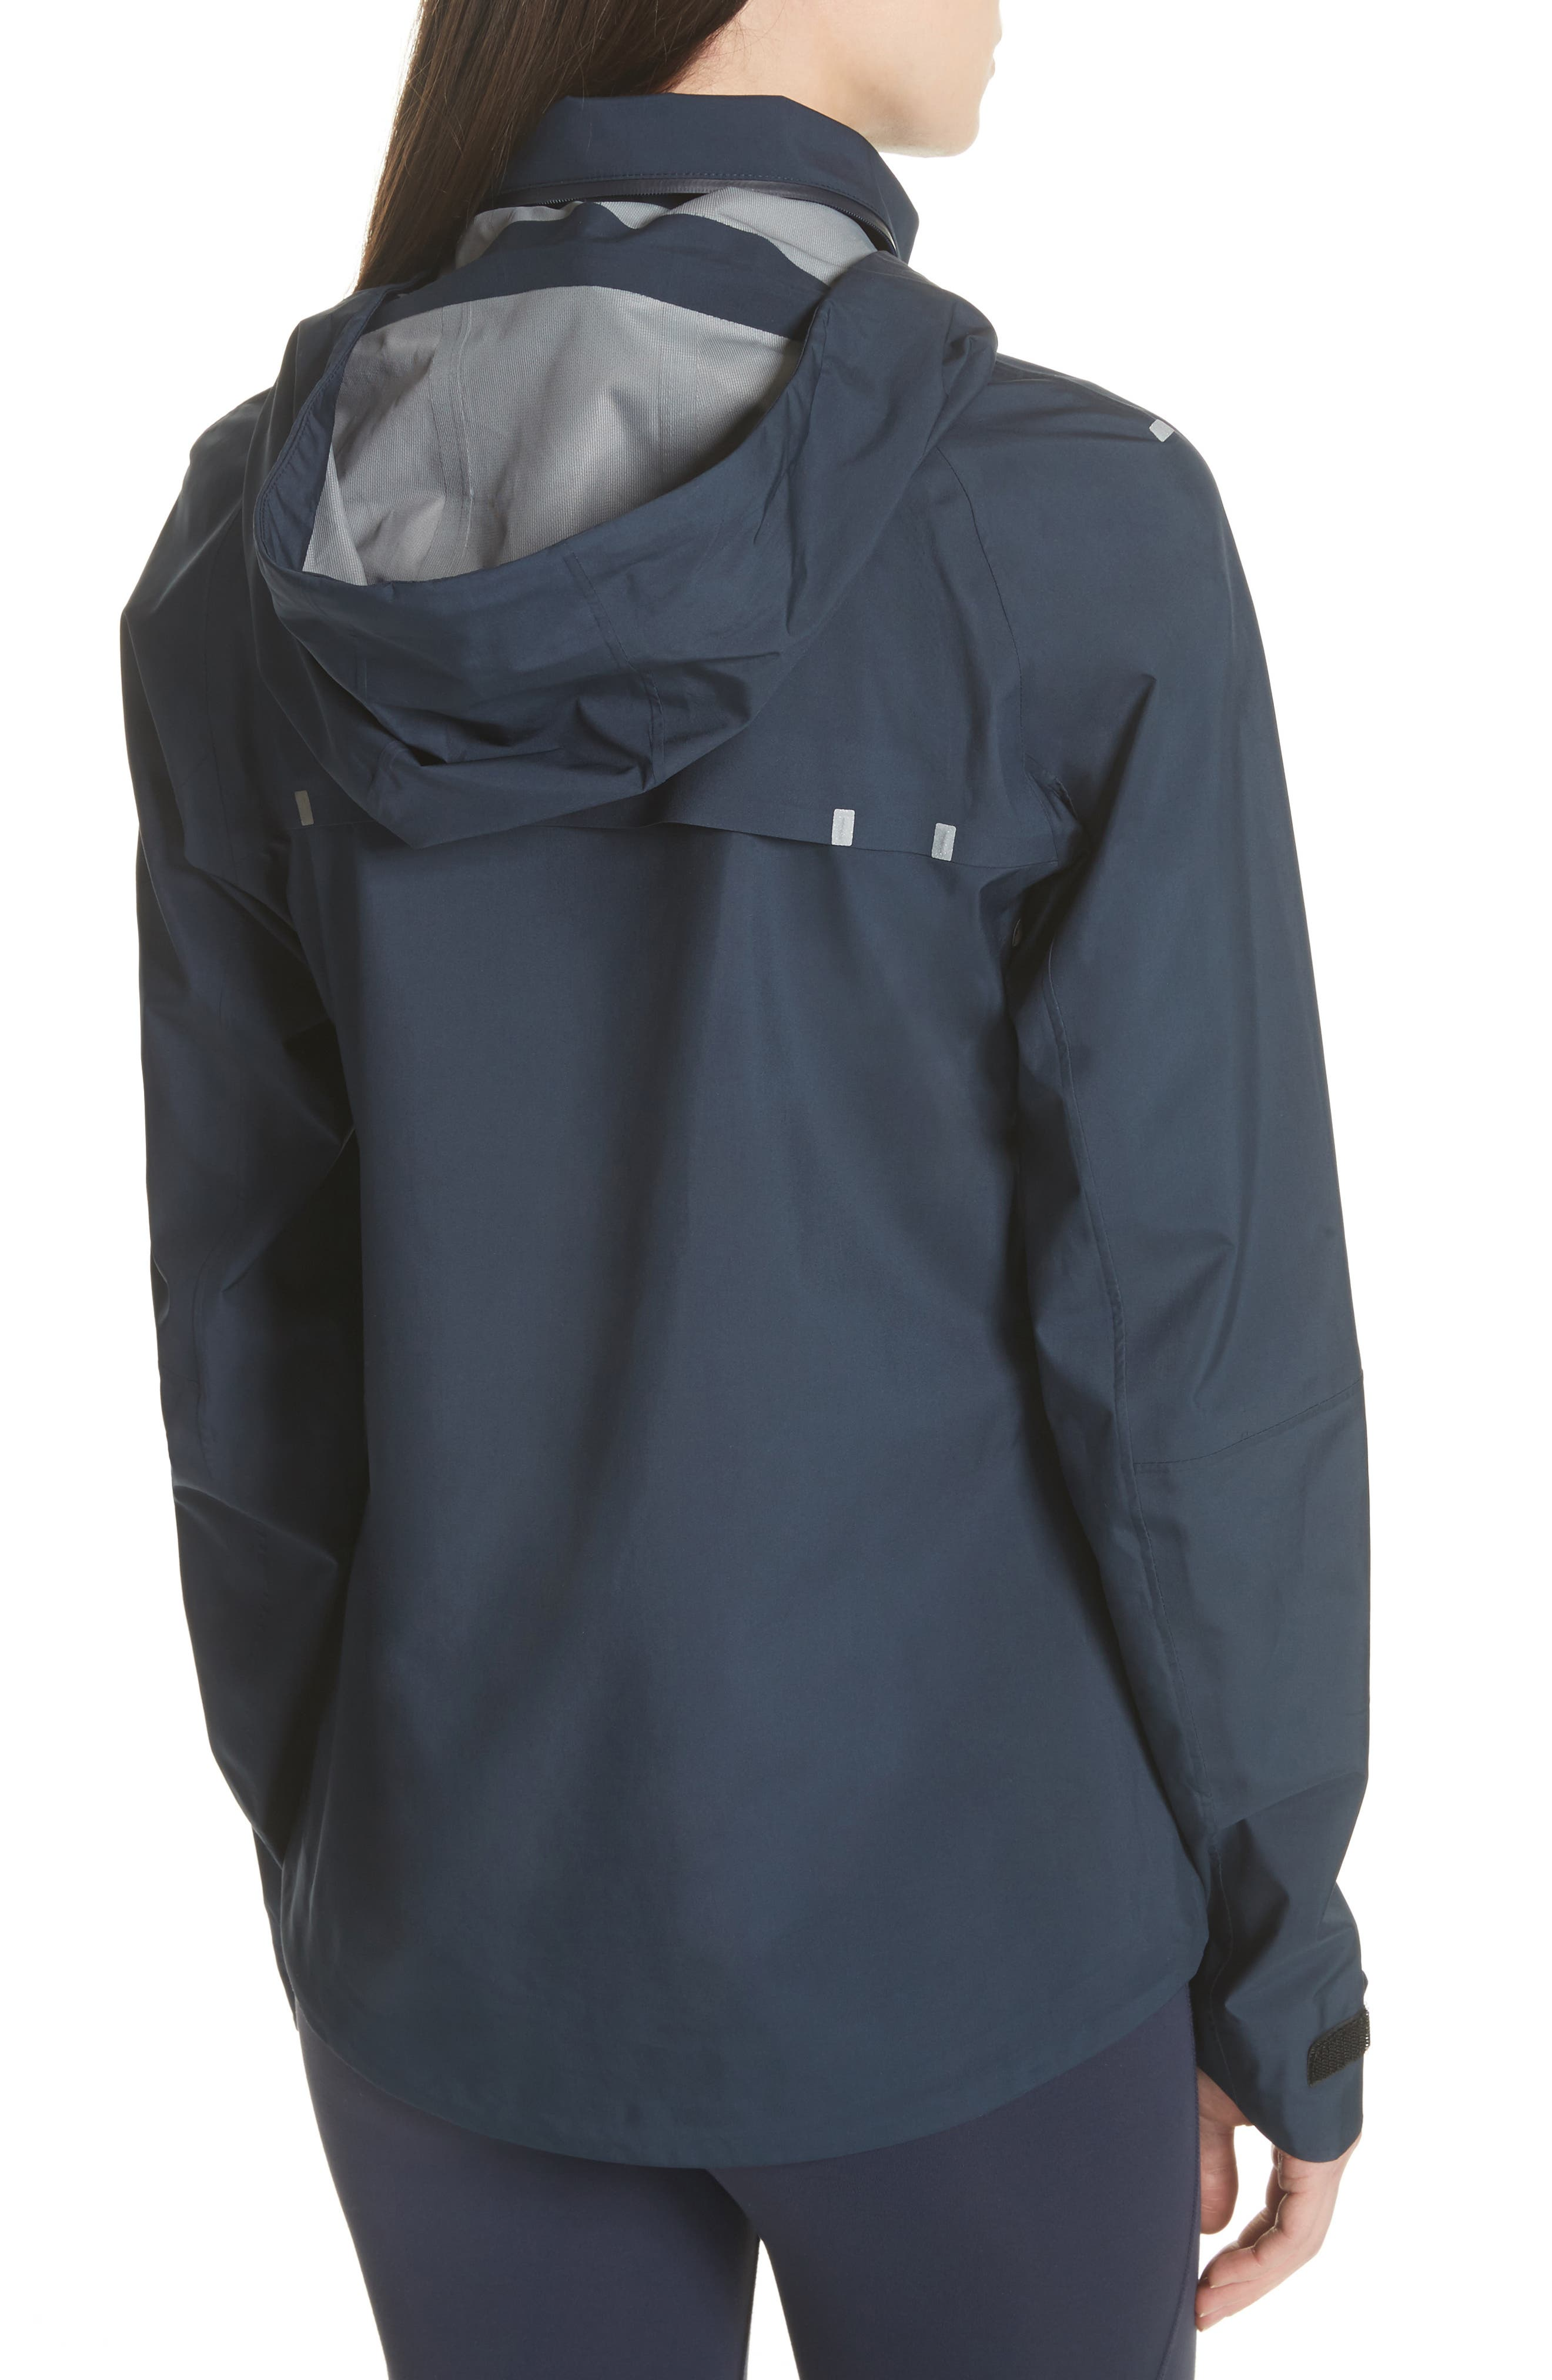 All Weather Run Jacket,                             Alternate thumbnail 3, color,                             Tory Navy/ White Snow